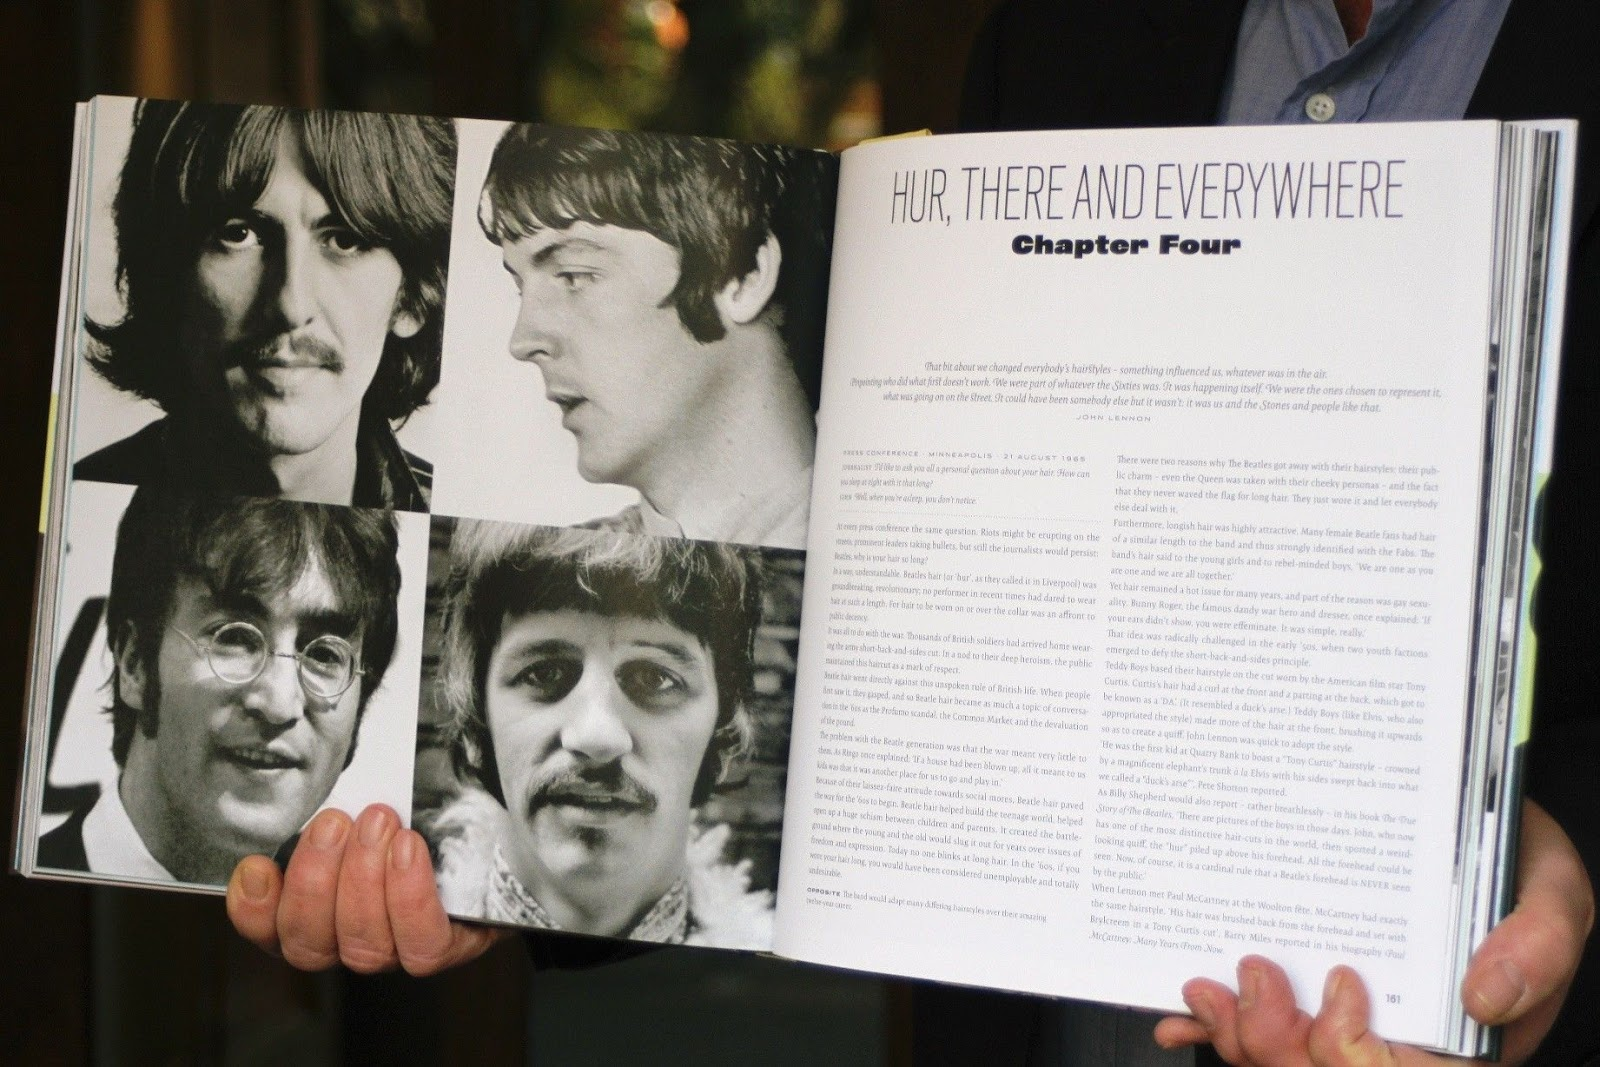 Fab Gear: The Beatles and Fashion: Paolo Hewitt 60